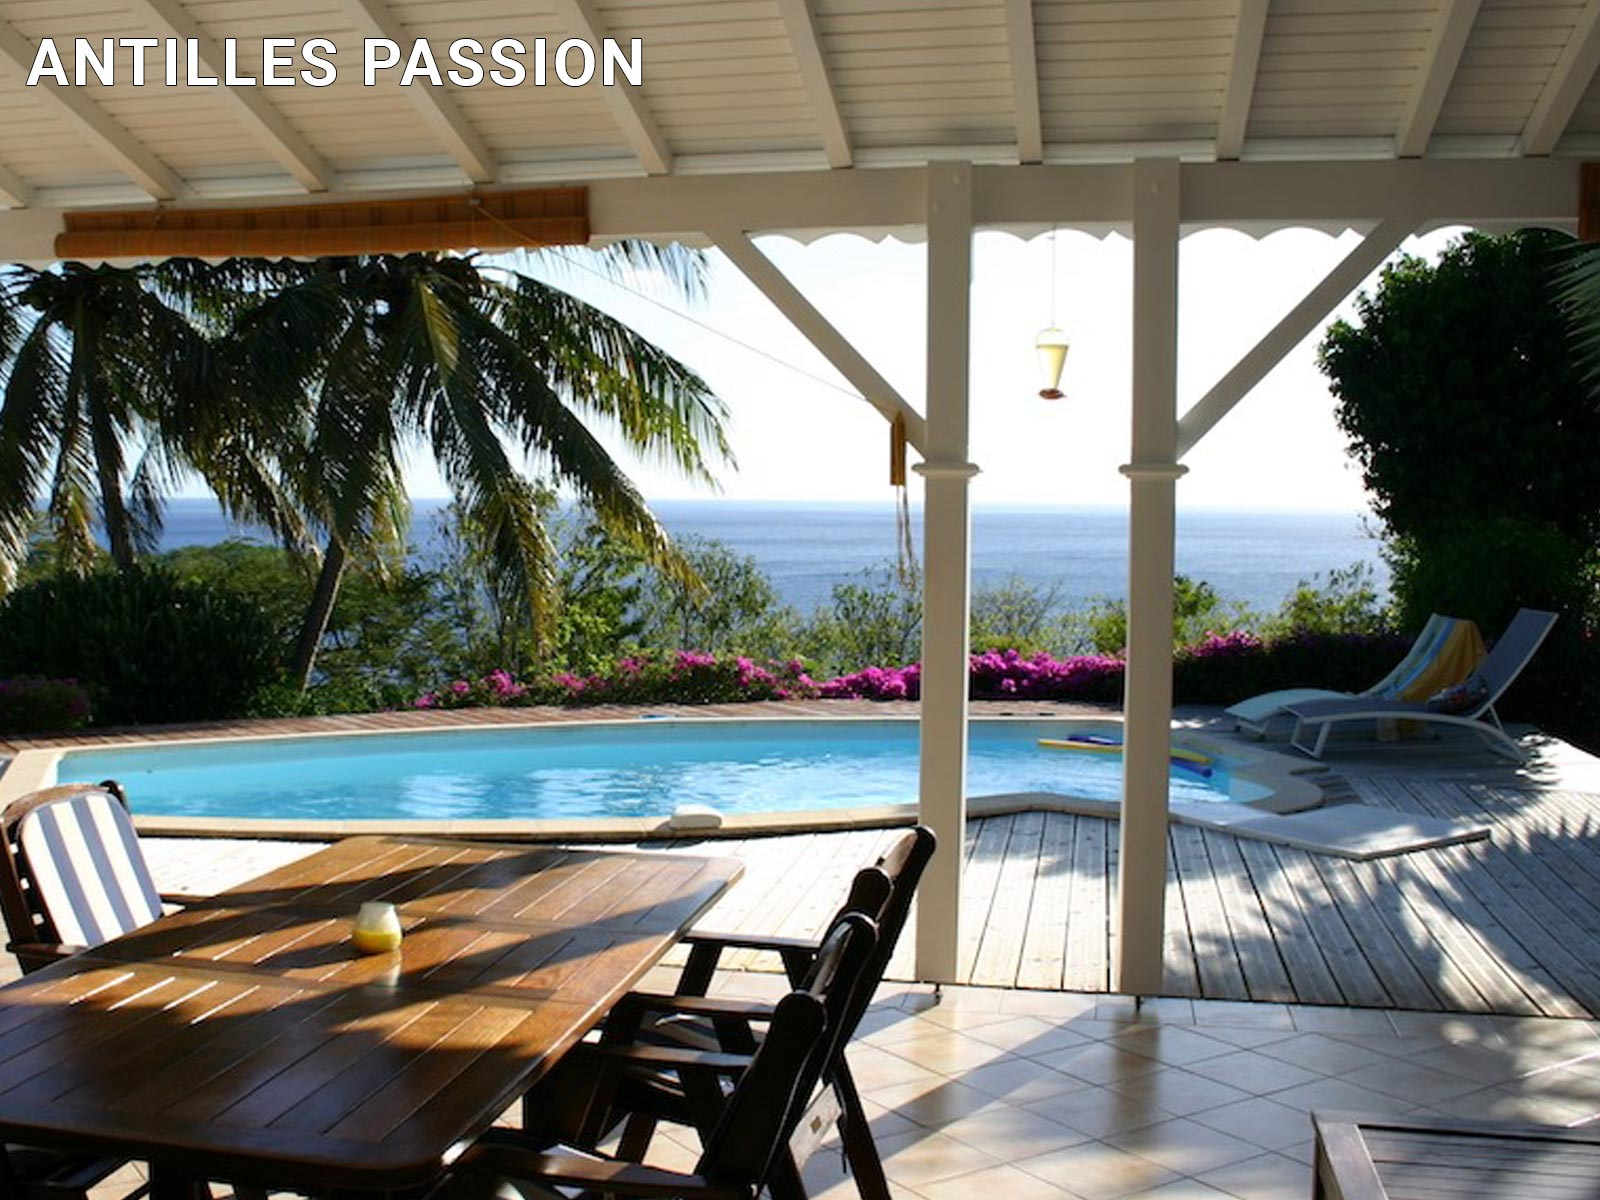 Antilles Passion - Piscine de villa